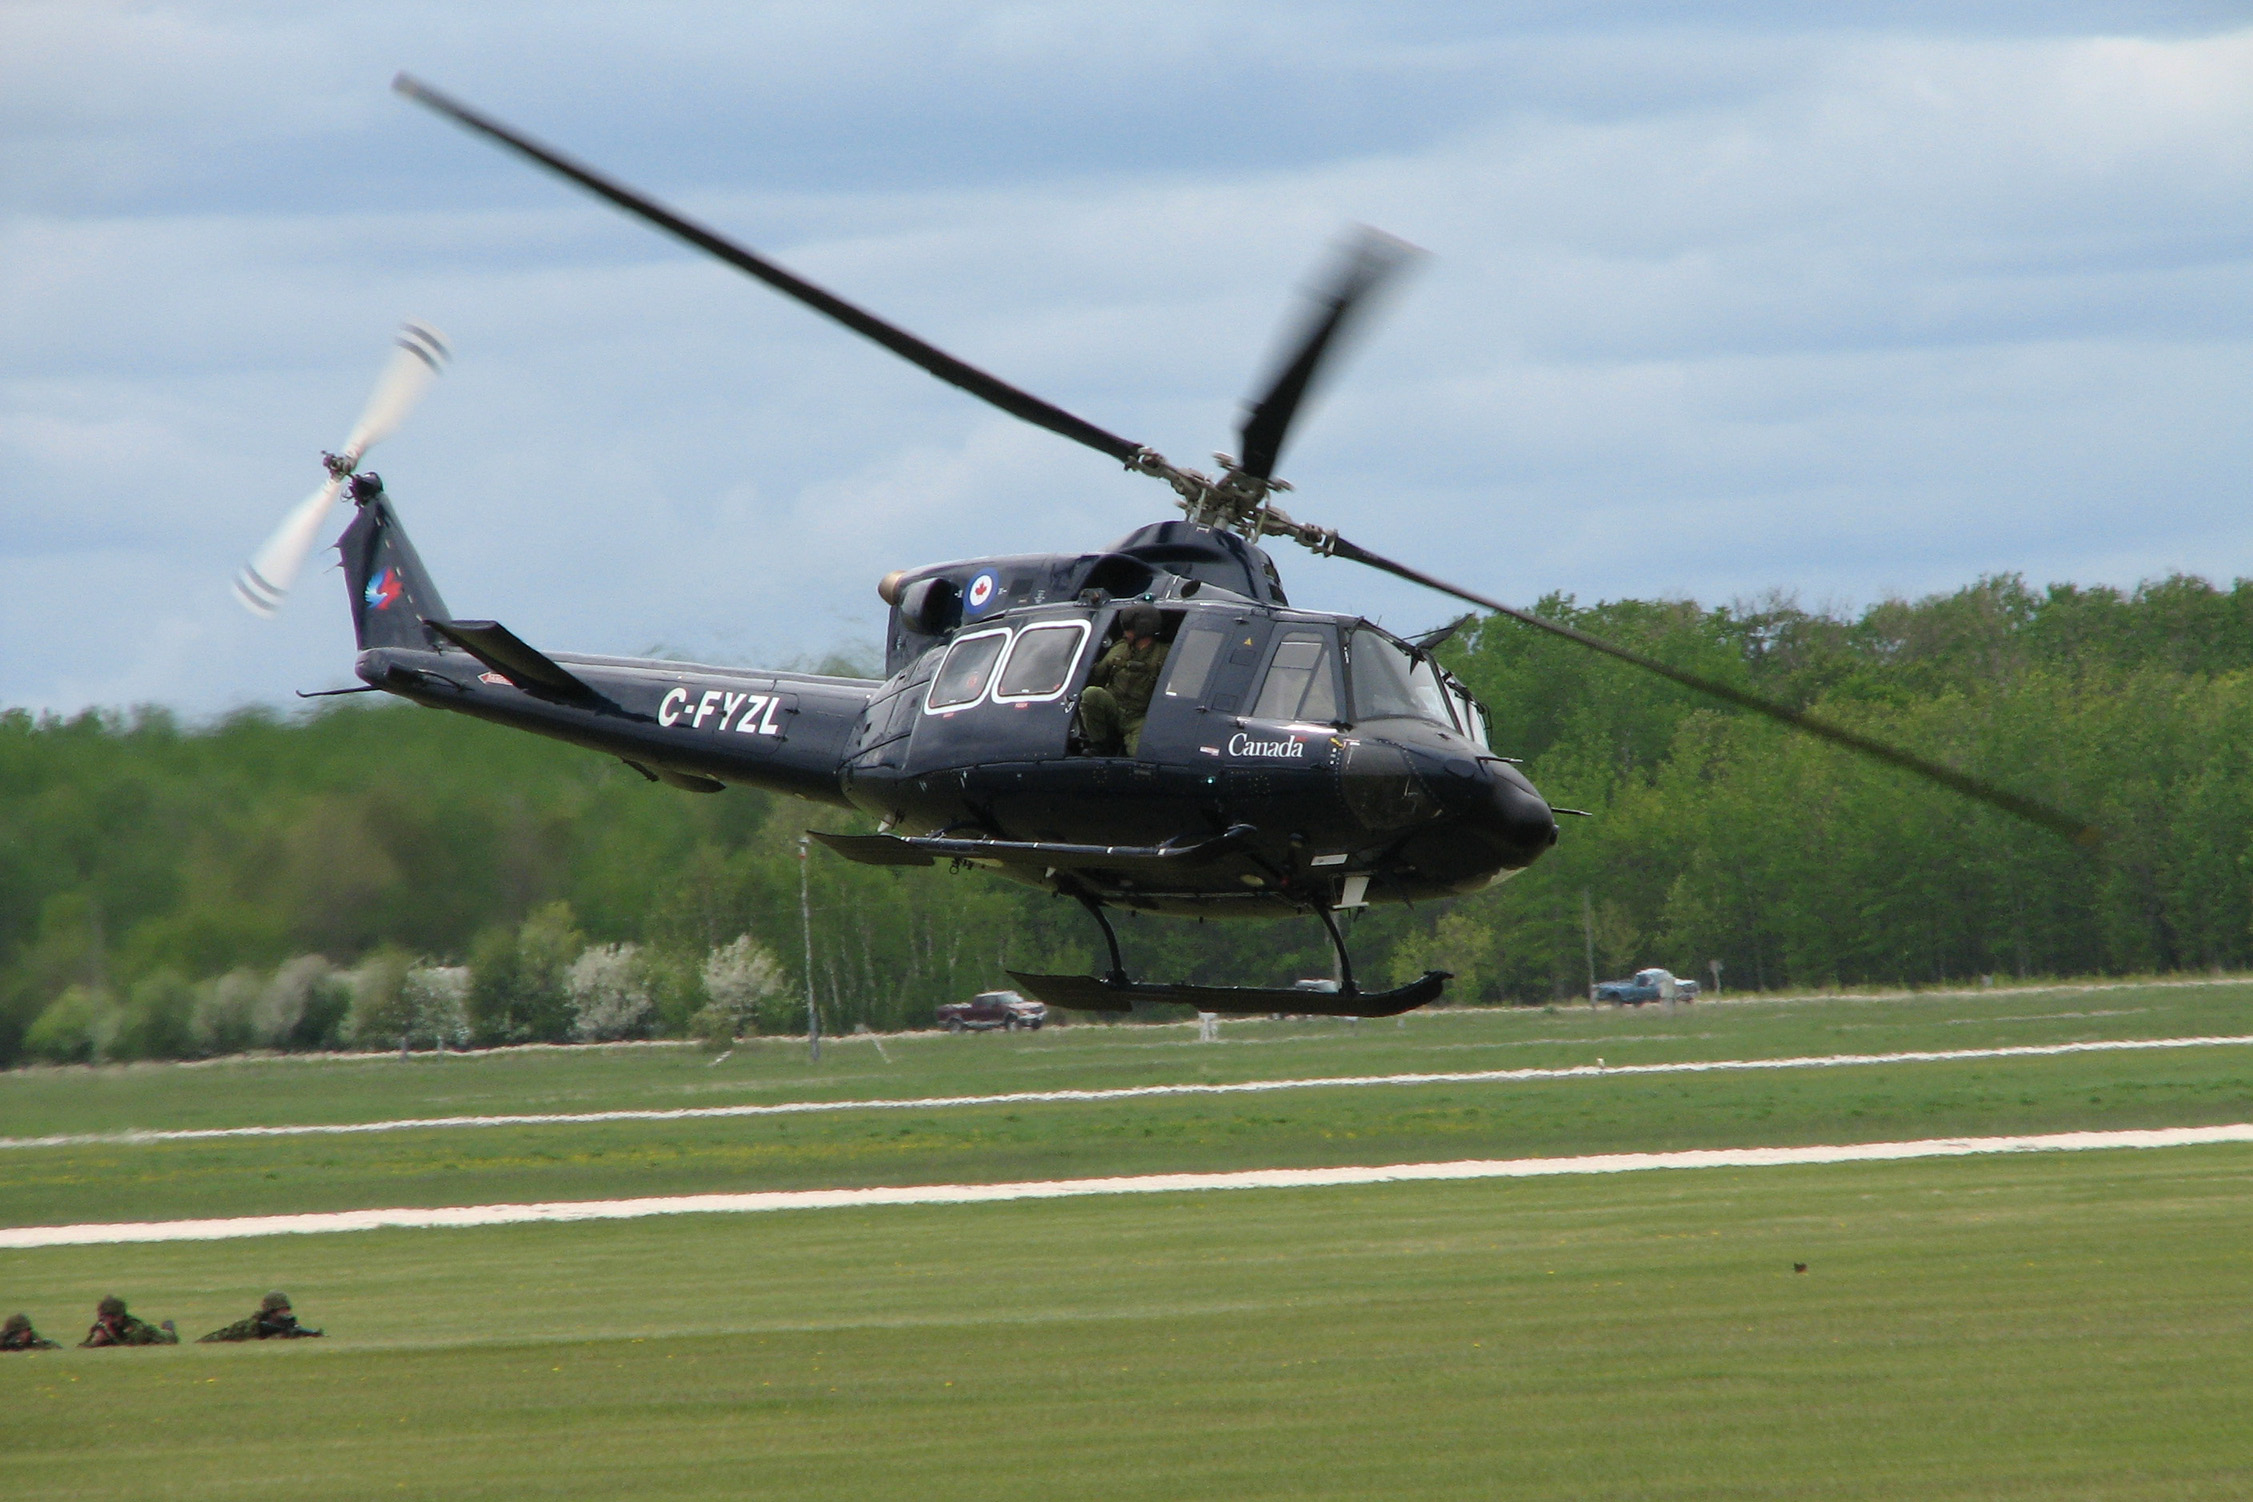 helicopter pilots license with File Bell 412 Outlaw on Watch together with Watch likewise 4240611 moreover Can I Save Money On Be ing A Helicopter Pilot In The Us If I Do Flight Hours I besides Matthew Jett Schaefer Hot American Model Actor And Pilot.